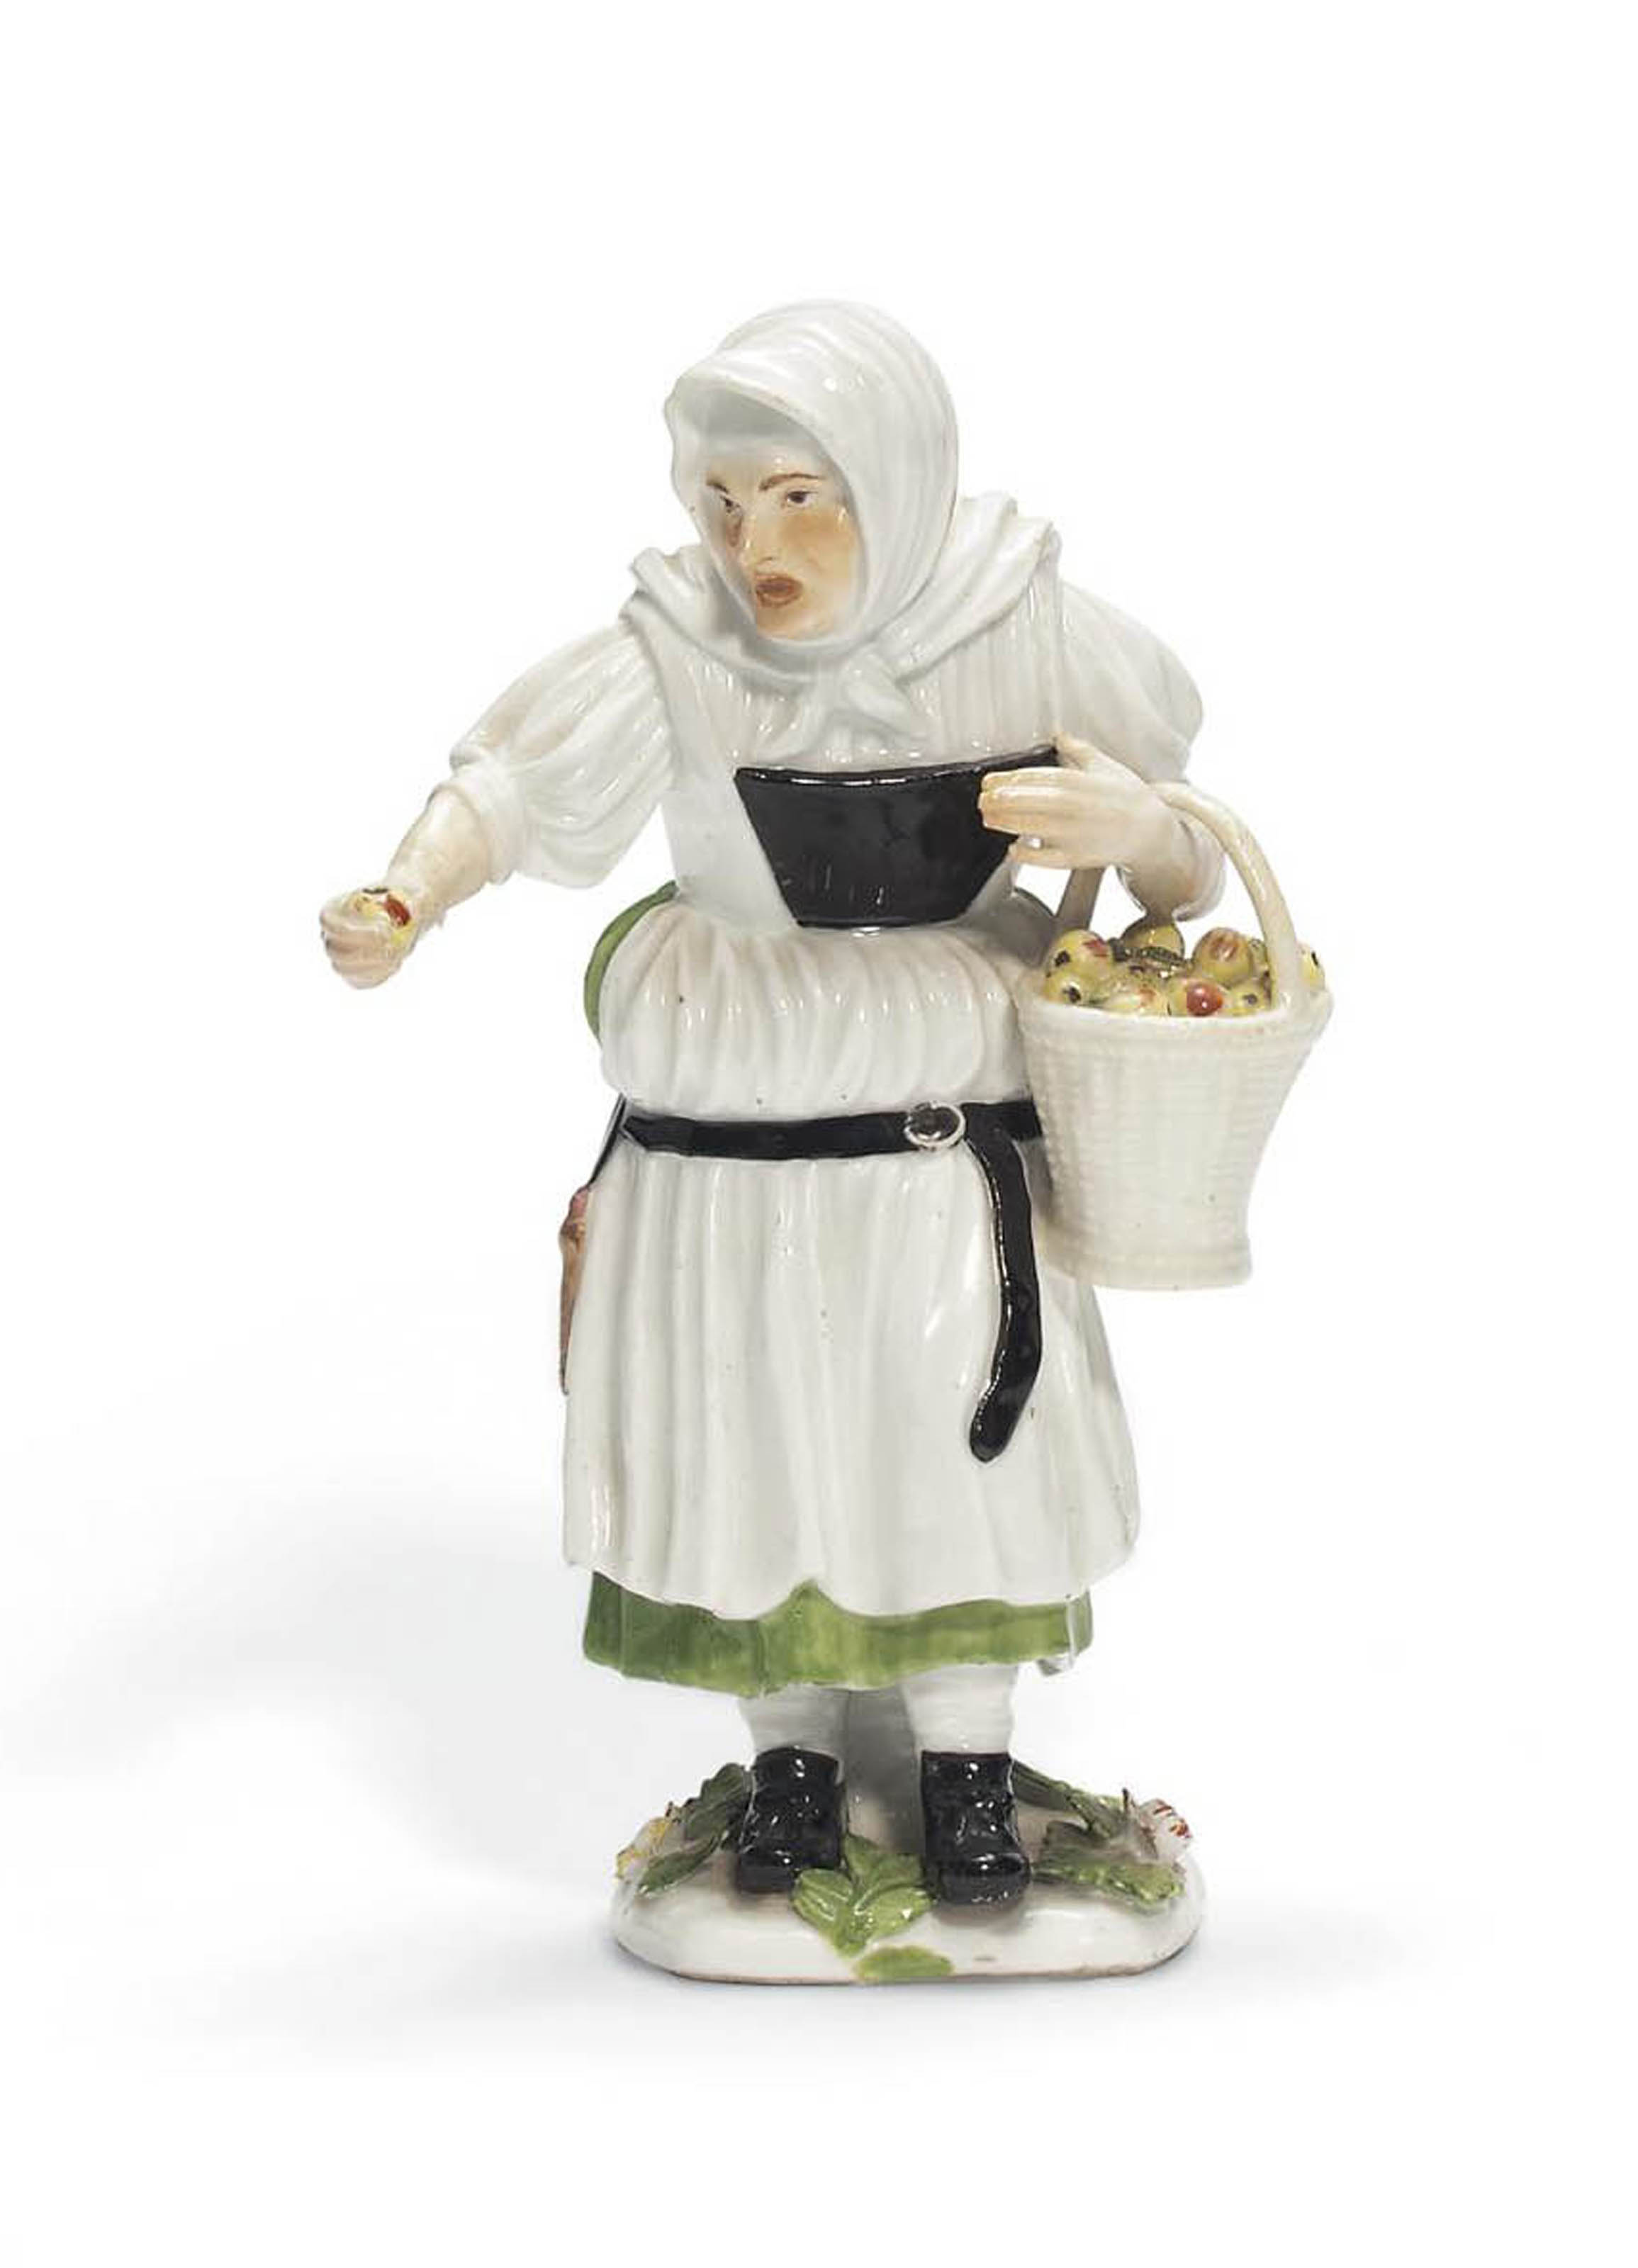 A MEISSEN FIGURE OF A FRUIT-SELLER FROM A SERIES OF PARISIAN STREET-TRADERS